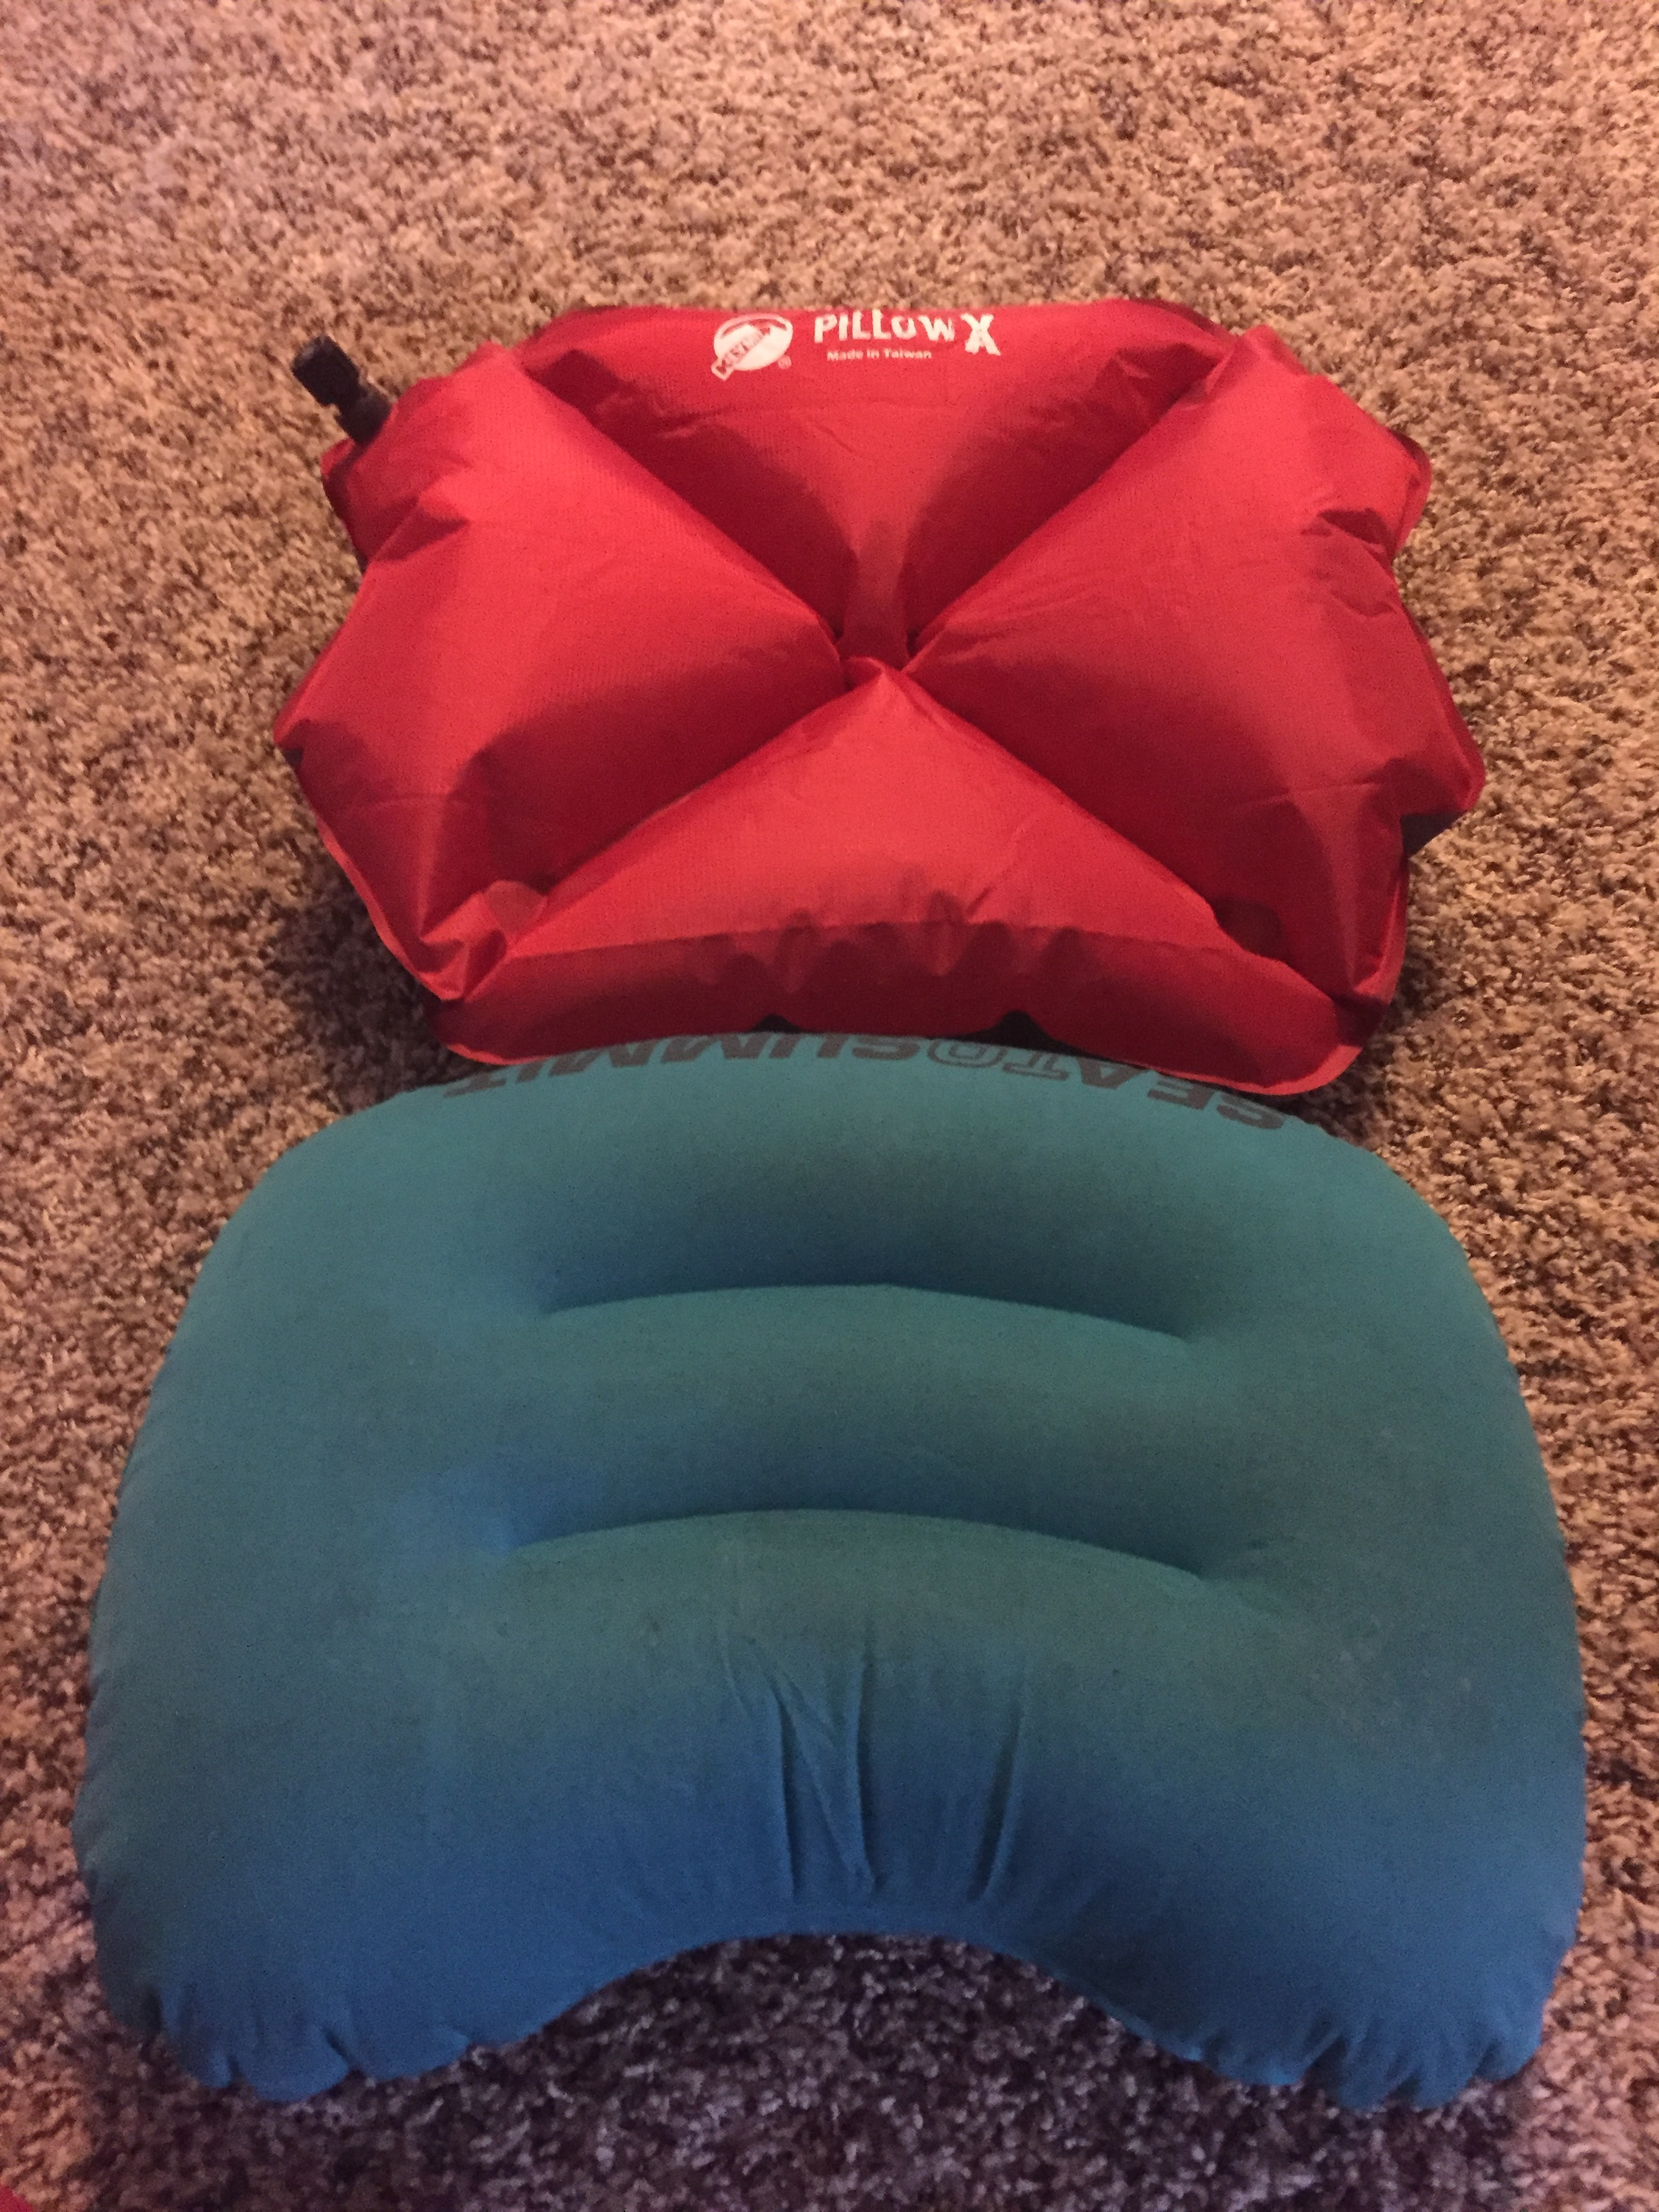 The red pillow above is the Klymit Pillow X; the green pillow below is the Sea to Summit Aeros Ultralight.